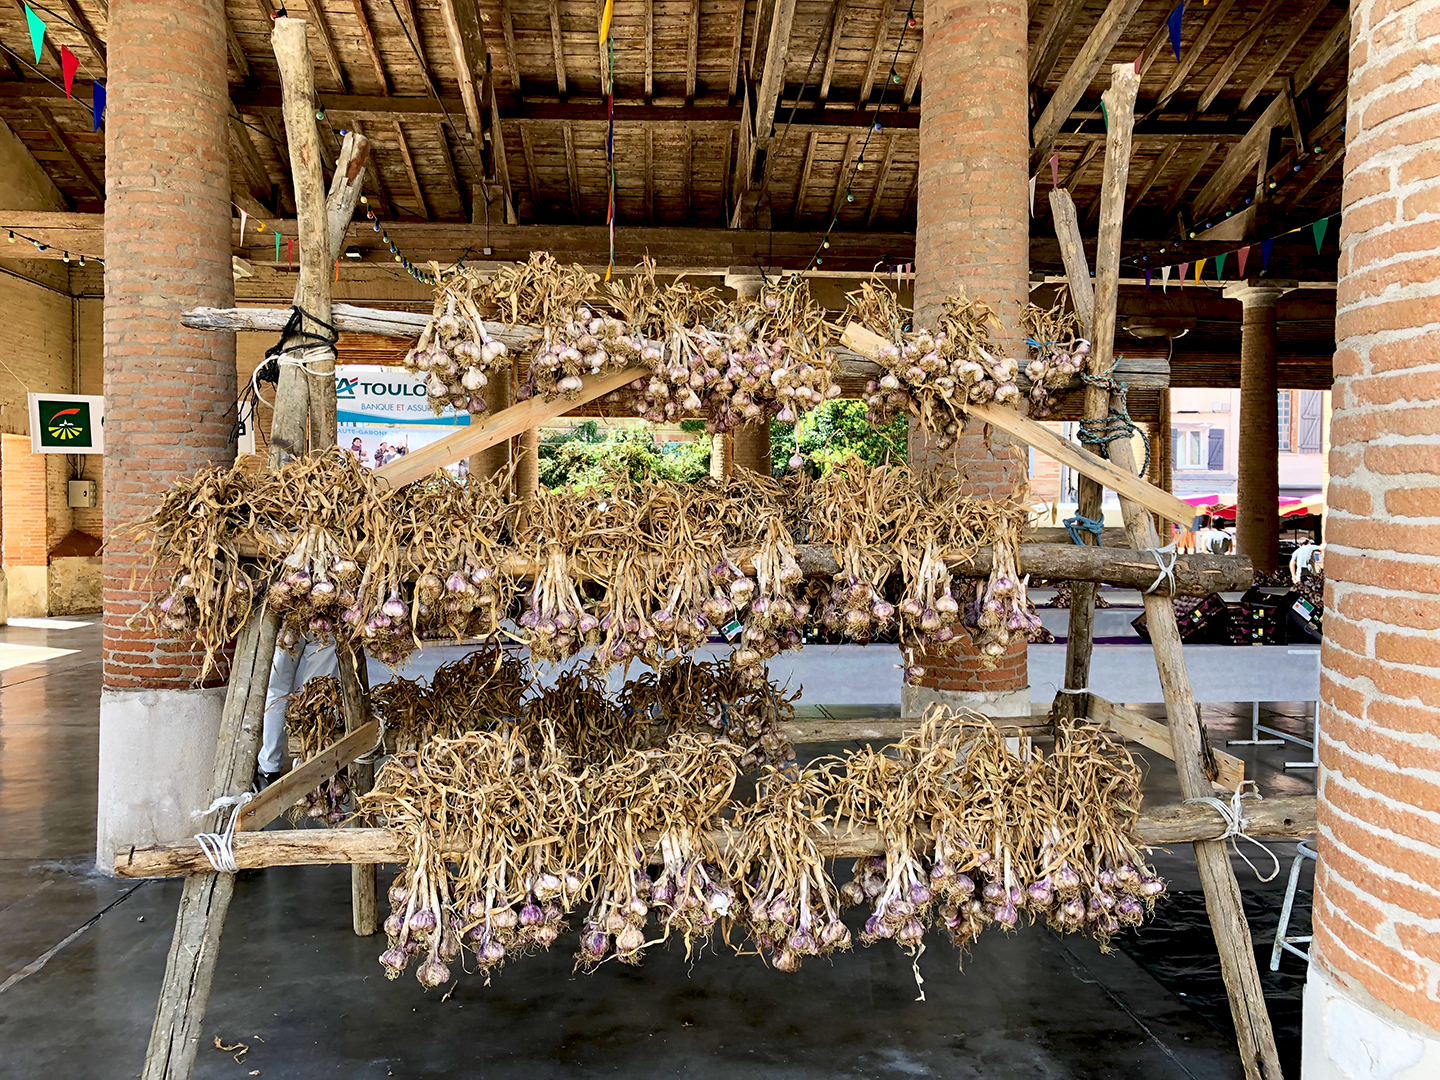 Bunches of garlic are hung to dry under la halle in Cadours